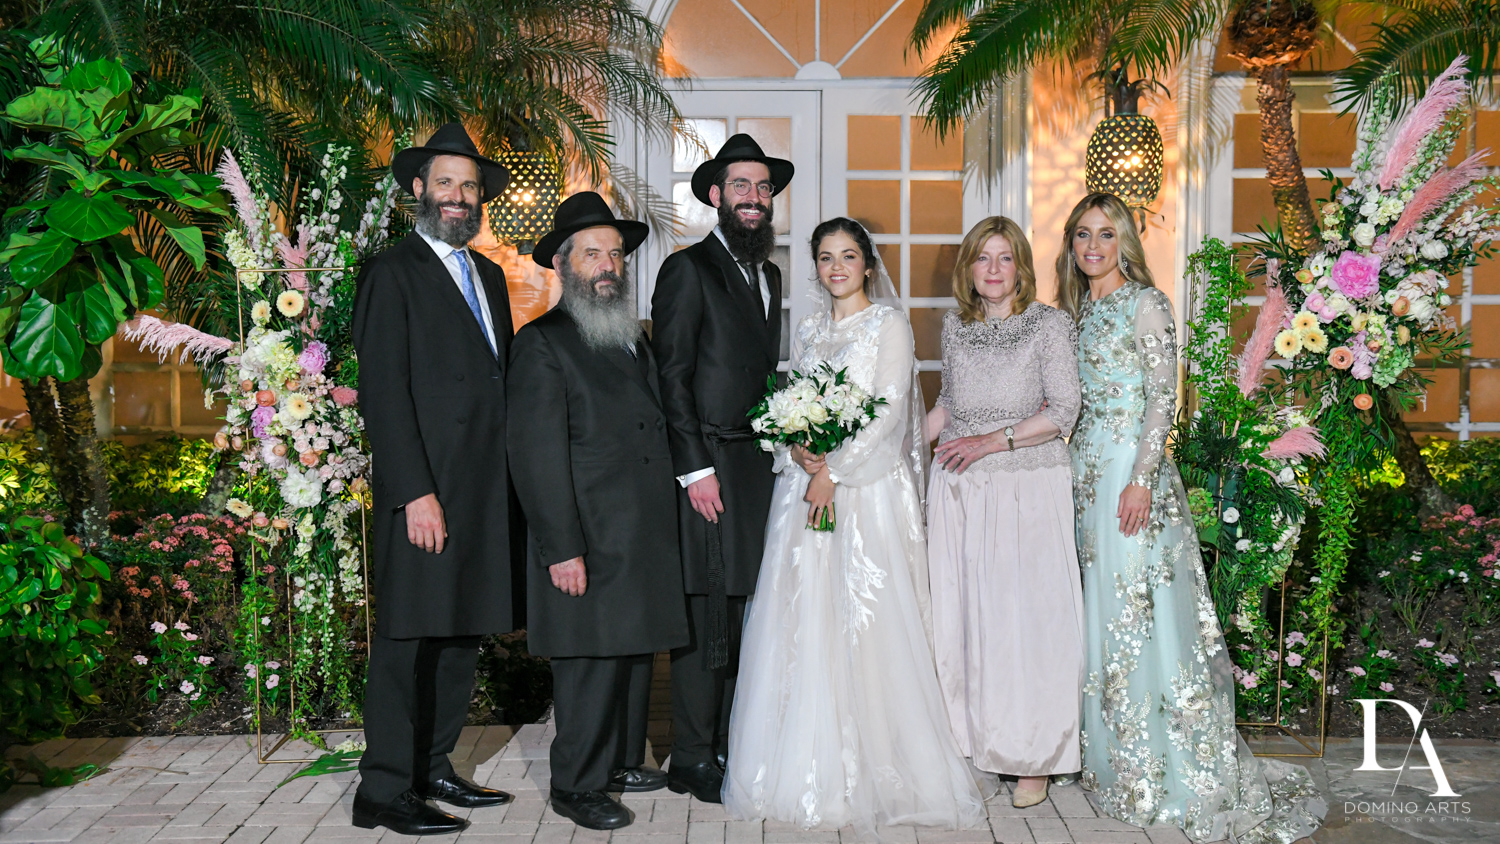 family photos at Jewish Orthodox Wedding in Palm Beach by Domino Arts Photography